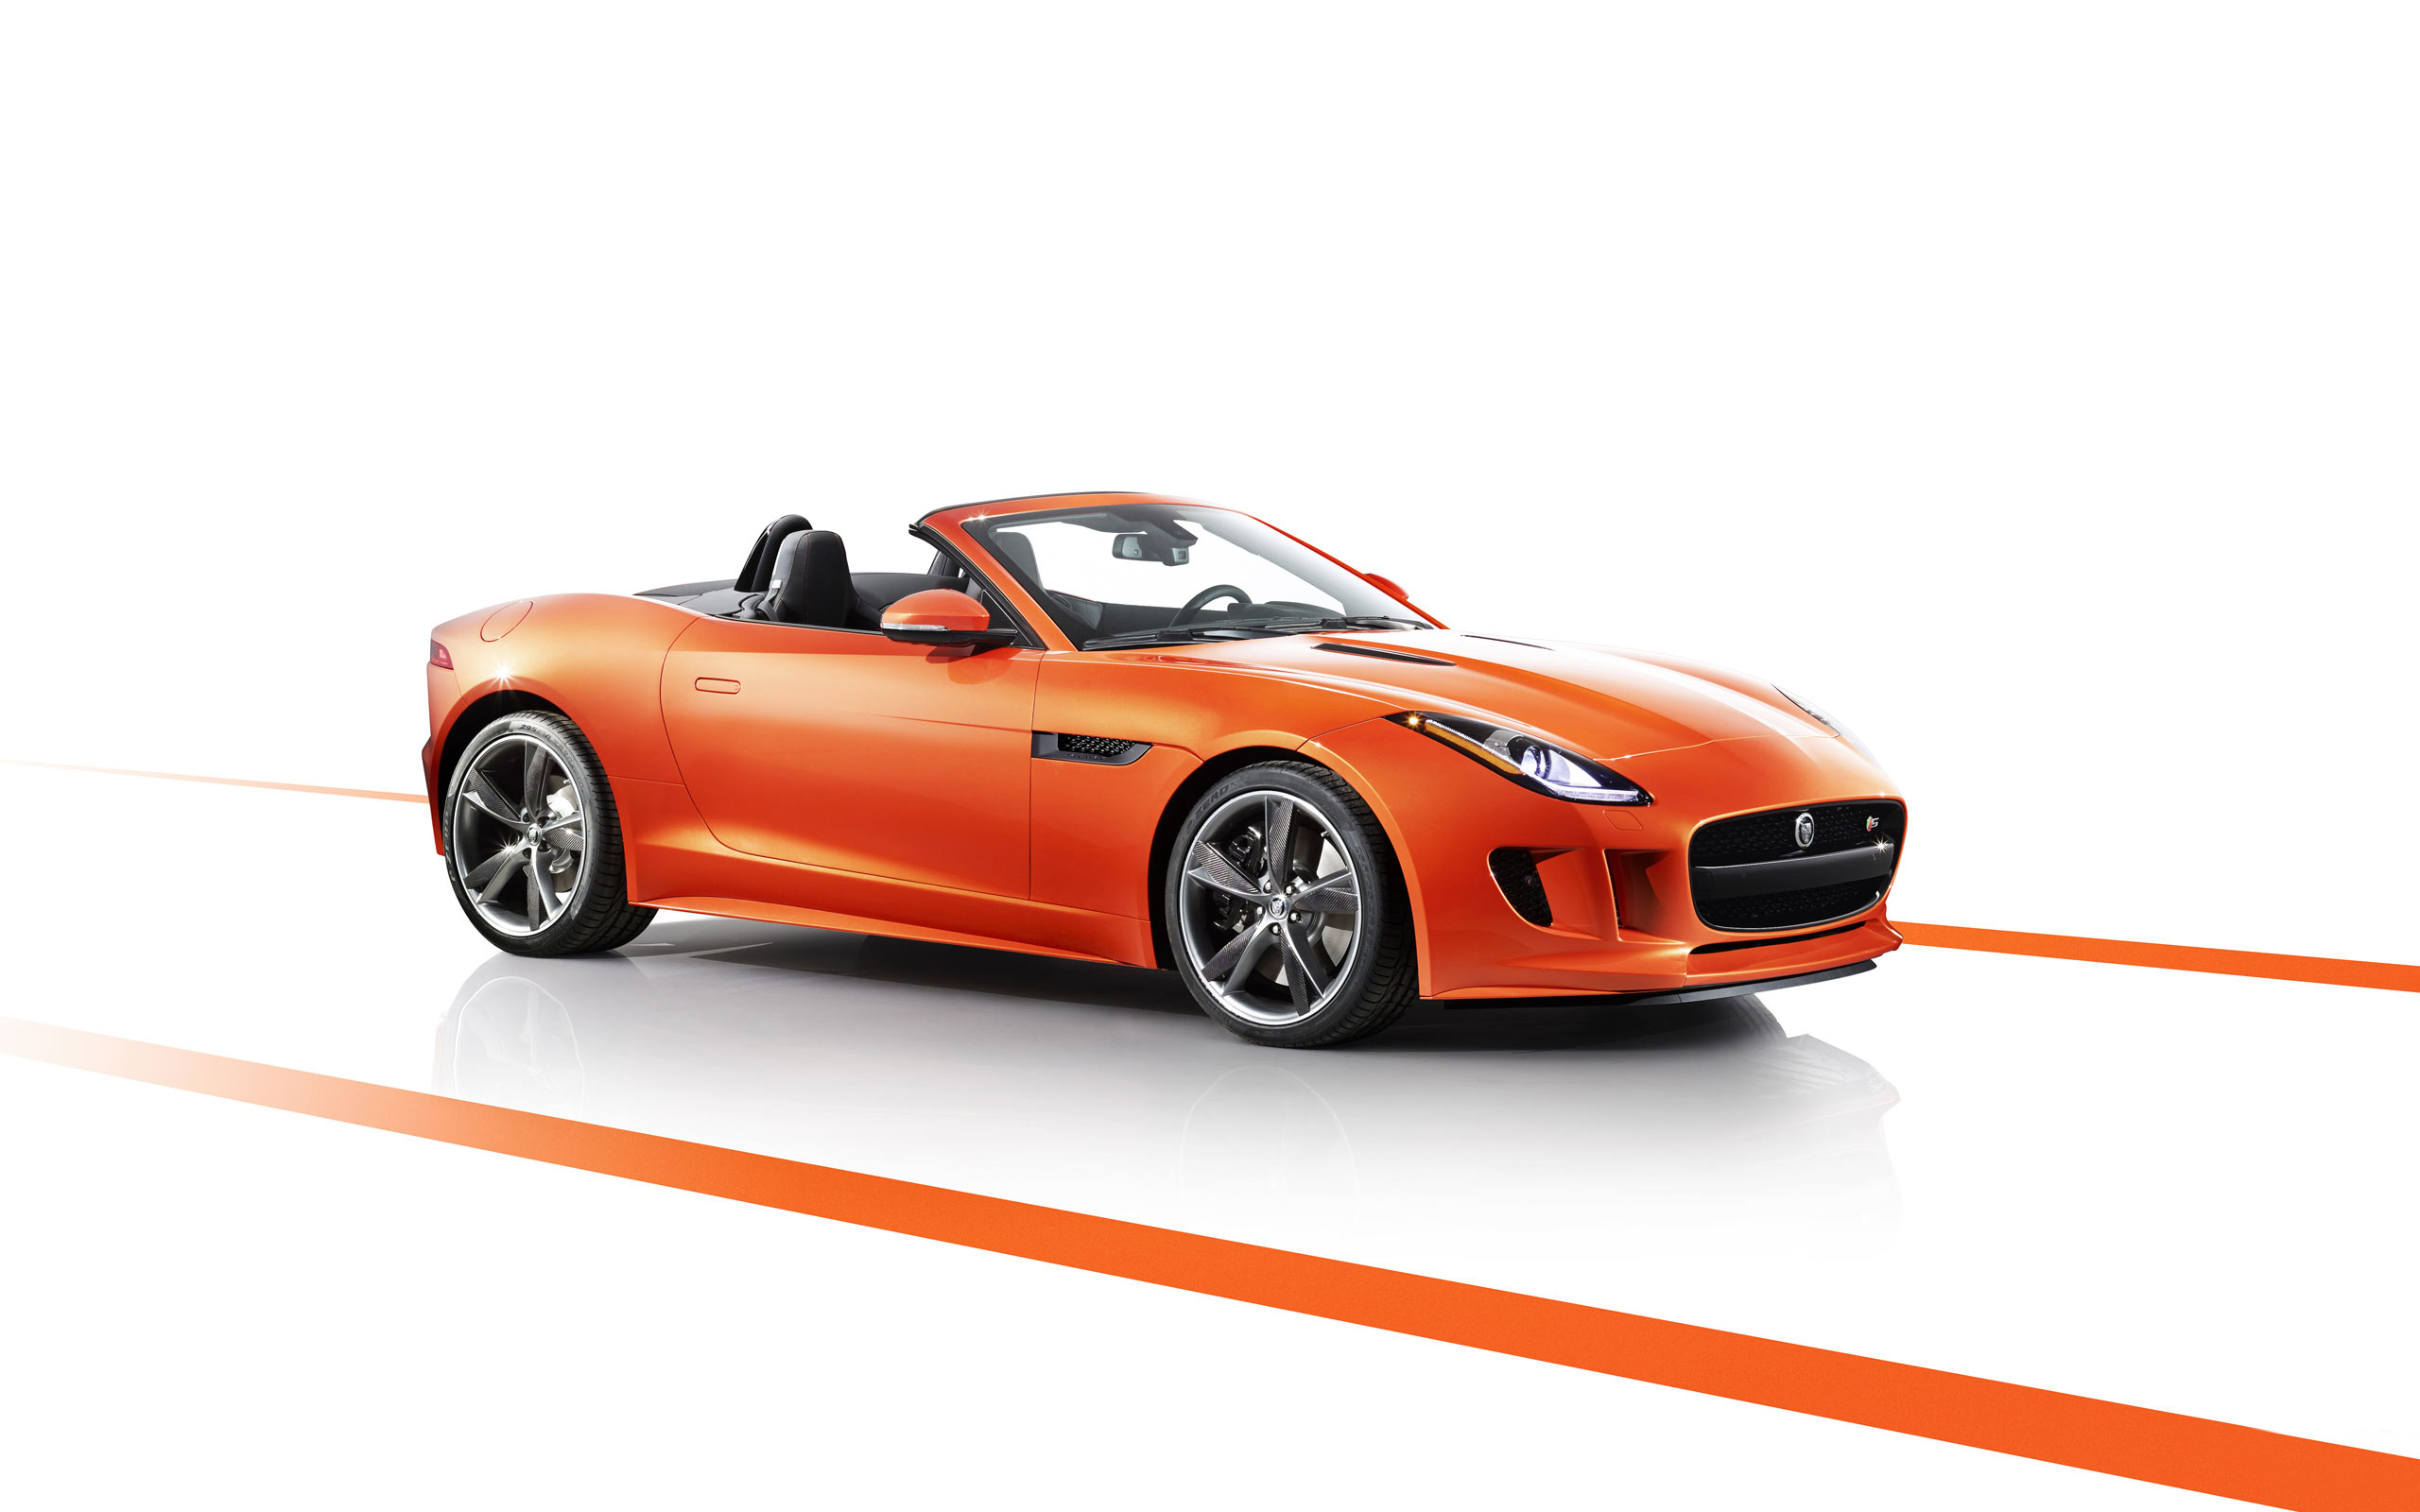 2013 Jaguar F Type Wallpaper HD Car Wallpapers 2560x1600